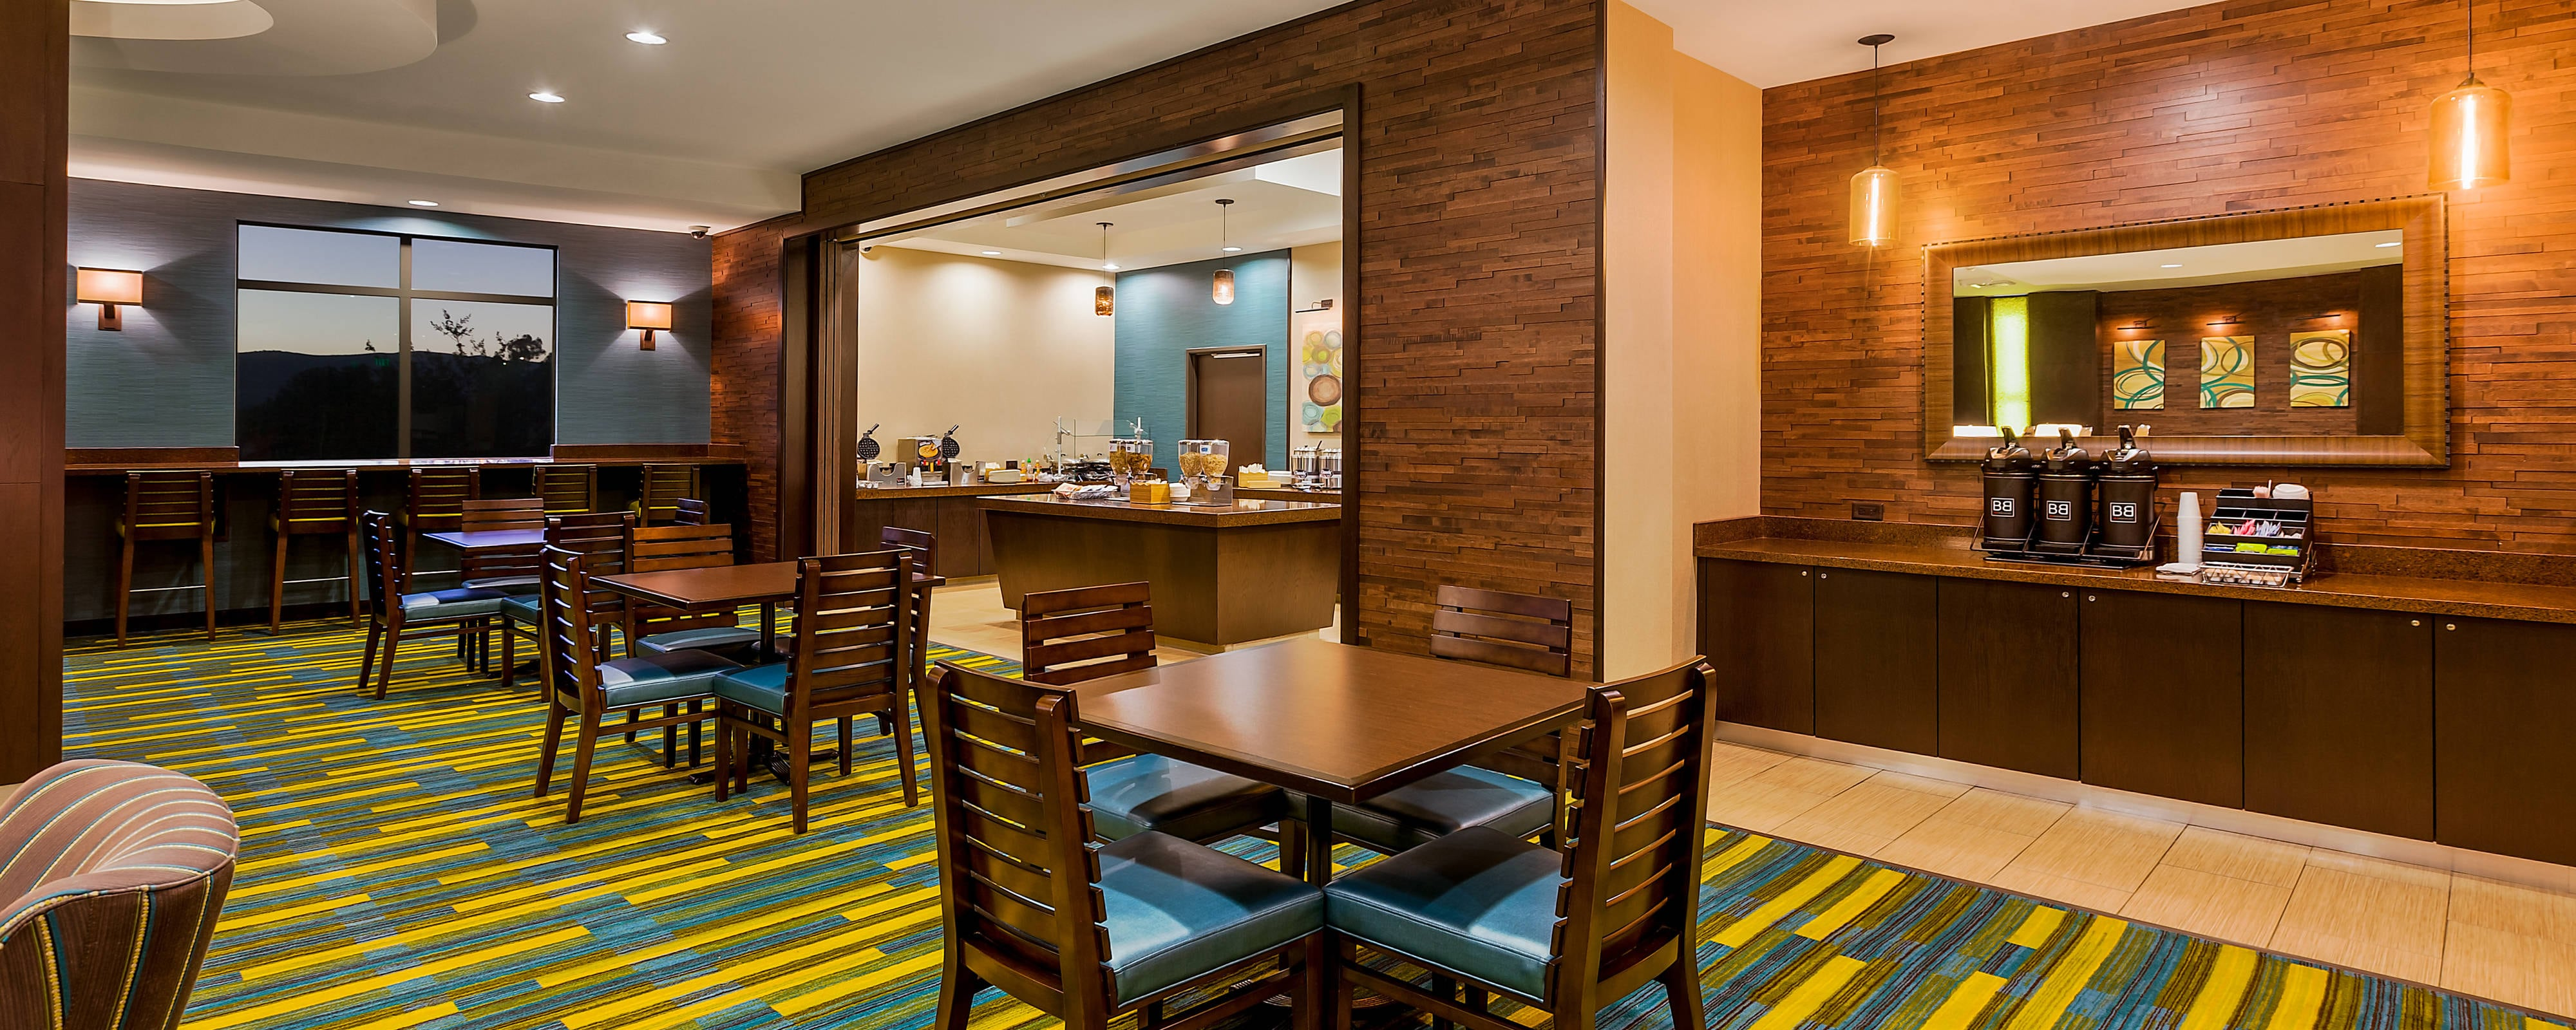 Fairfield Inn Norco Breakfast Area